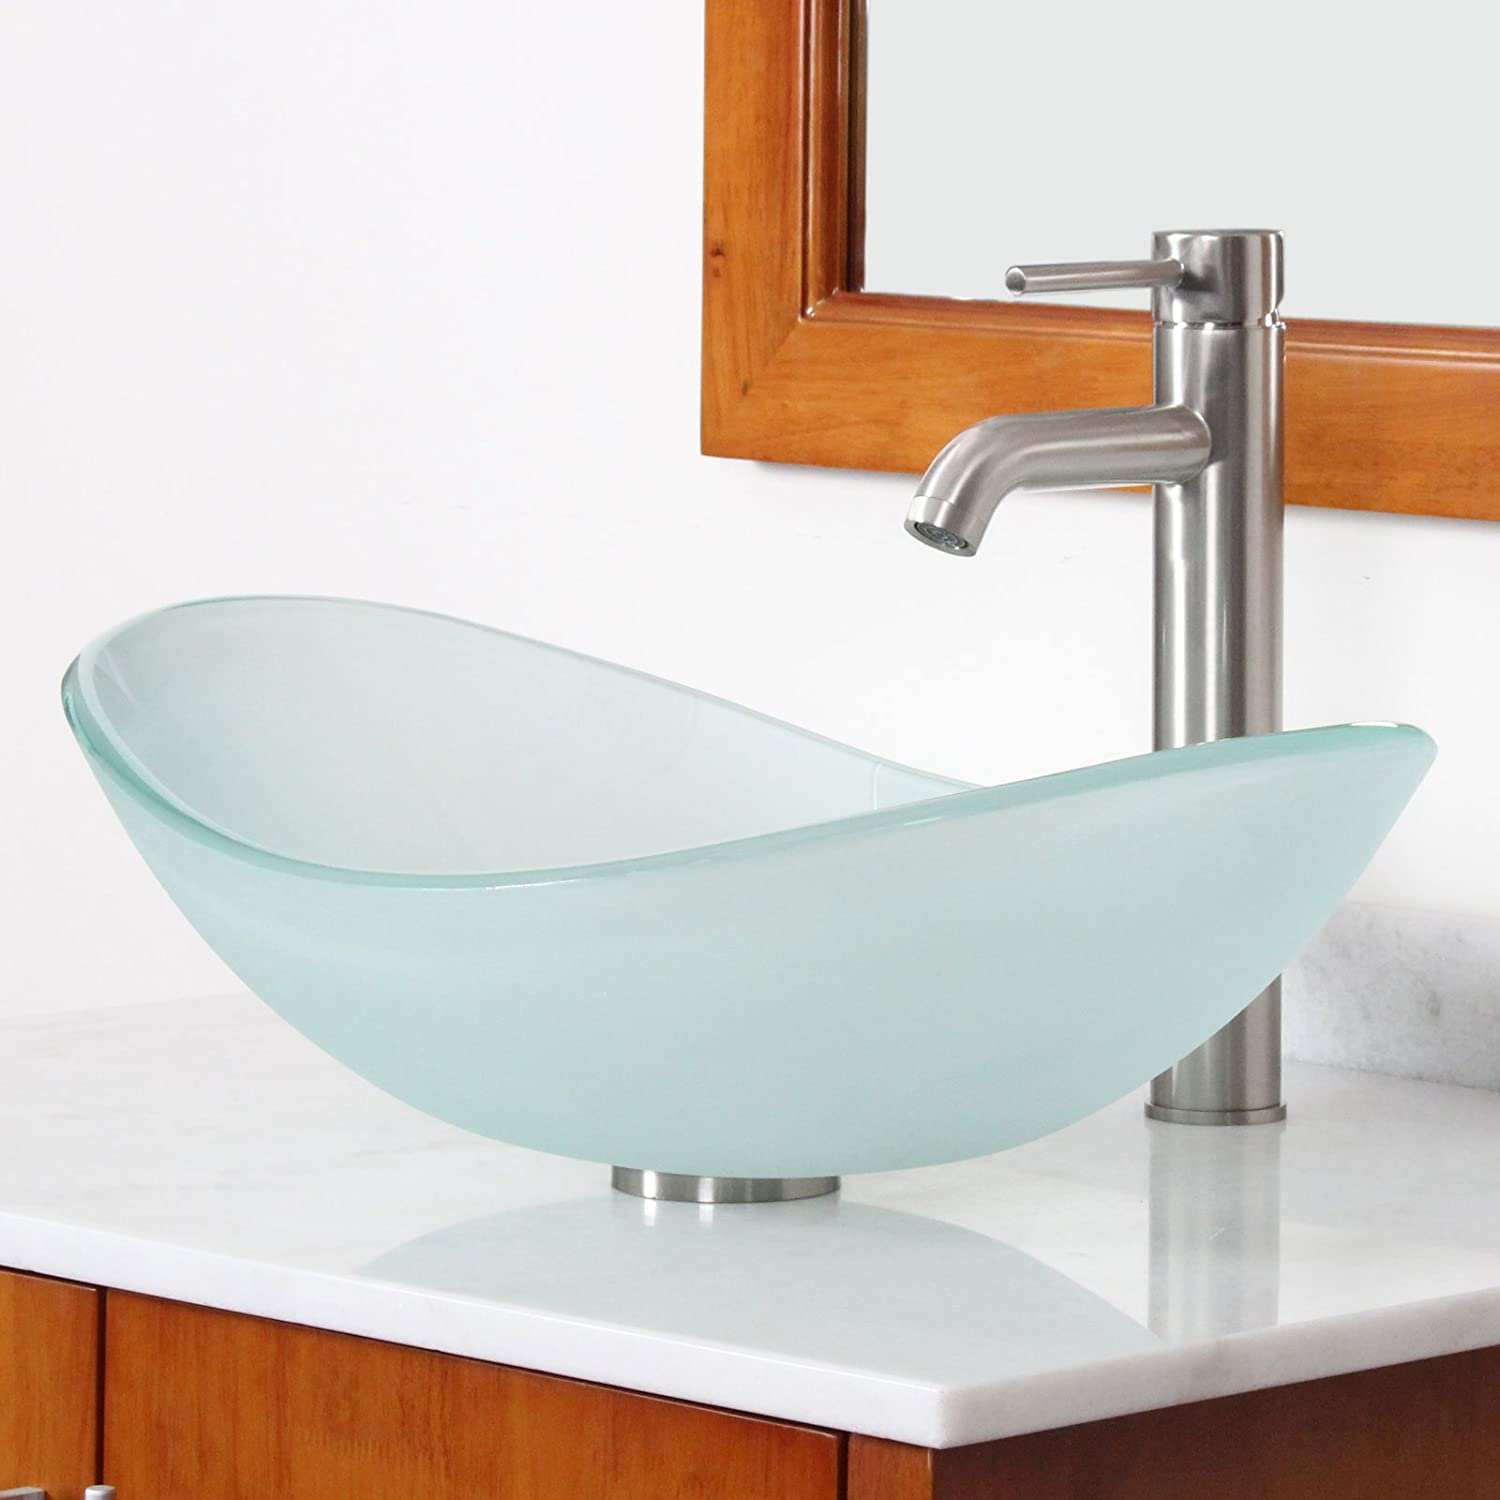 ELITE Bathroom Boat Shape Frosted Glass Vessel Sink & Brushed Nickel ...